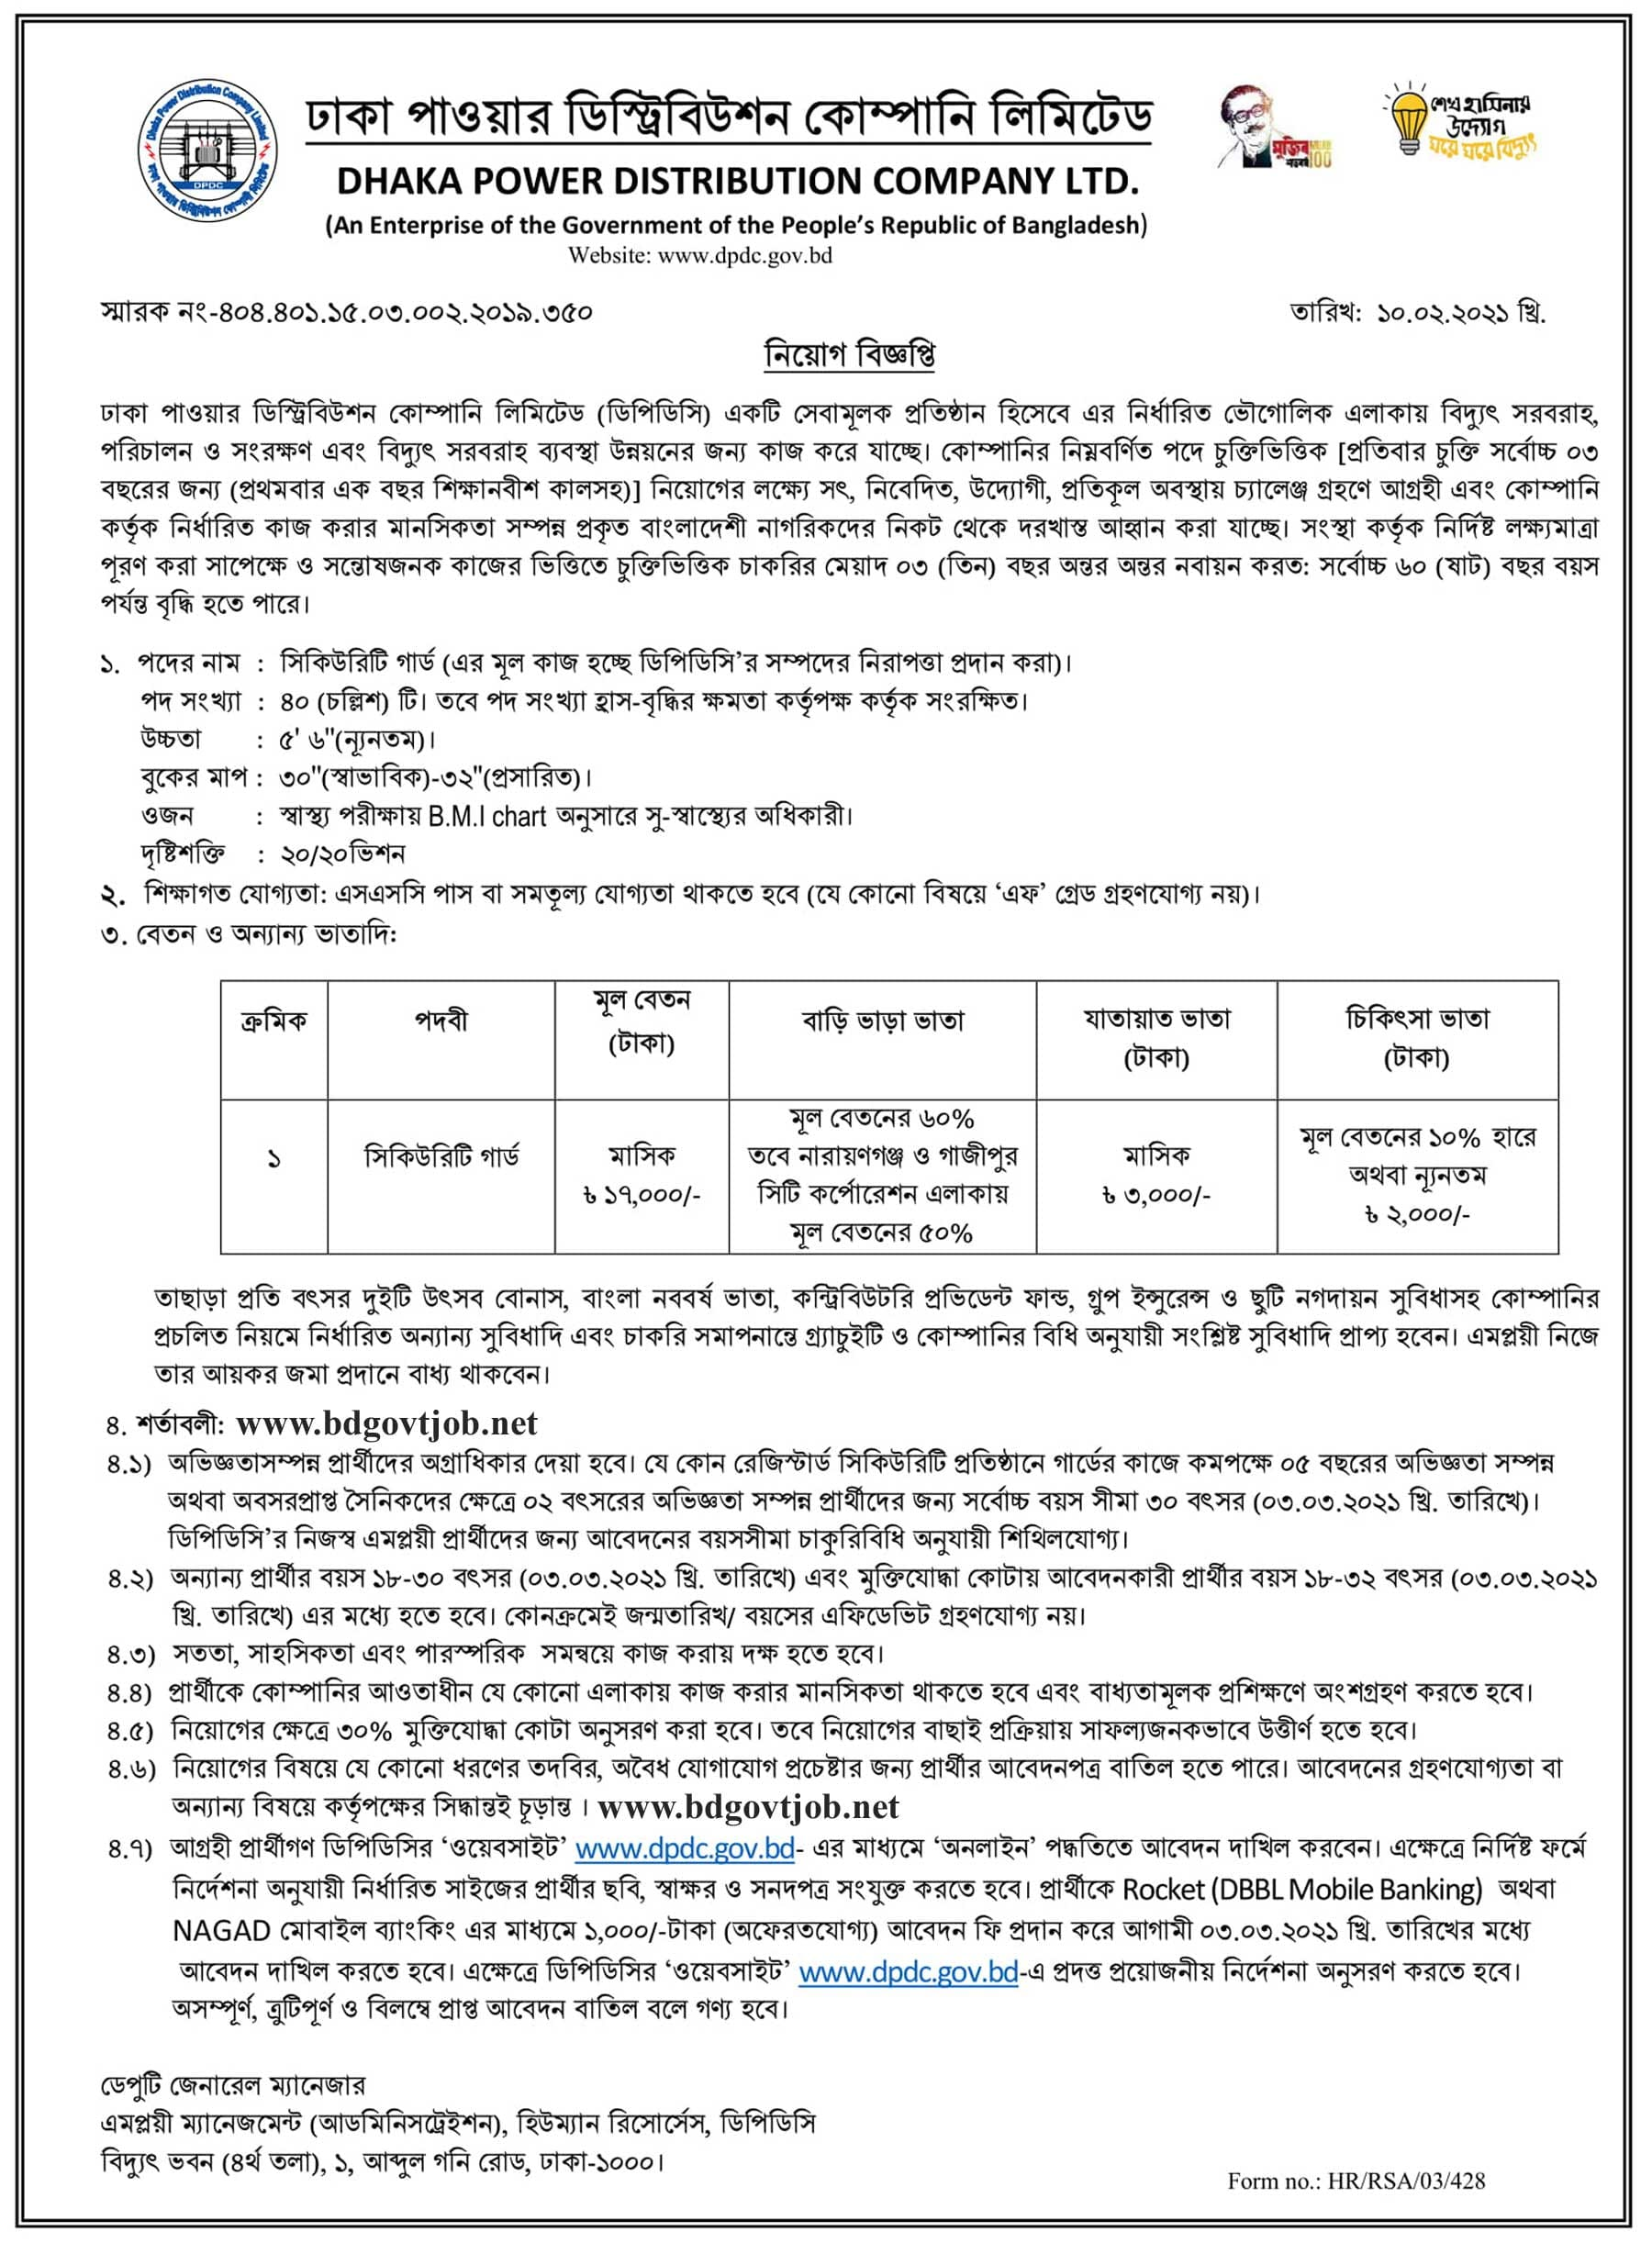 Dhaka Power Distribution Company Ltd Job Circular 2021